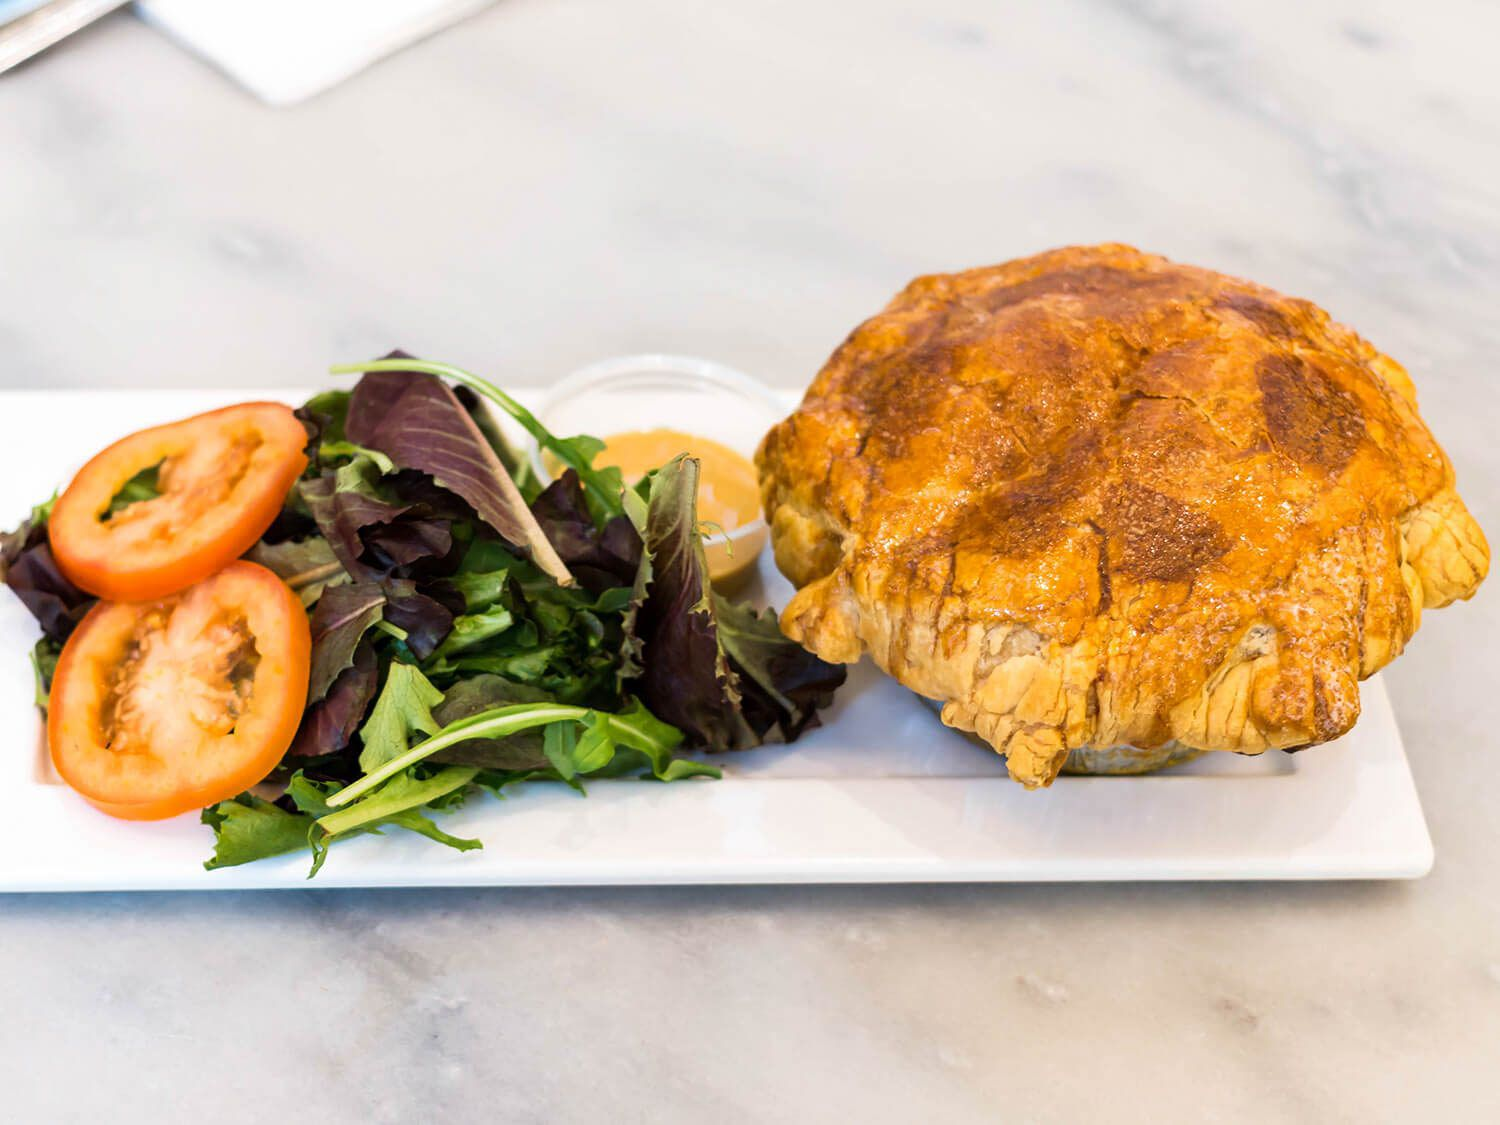 A golden-crusted pot pie on a plate next to greens and sliced tomato